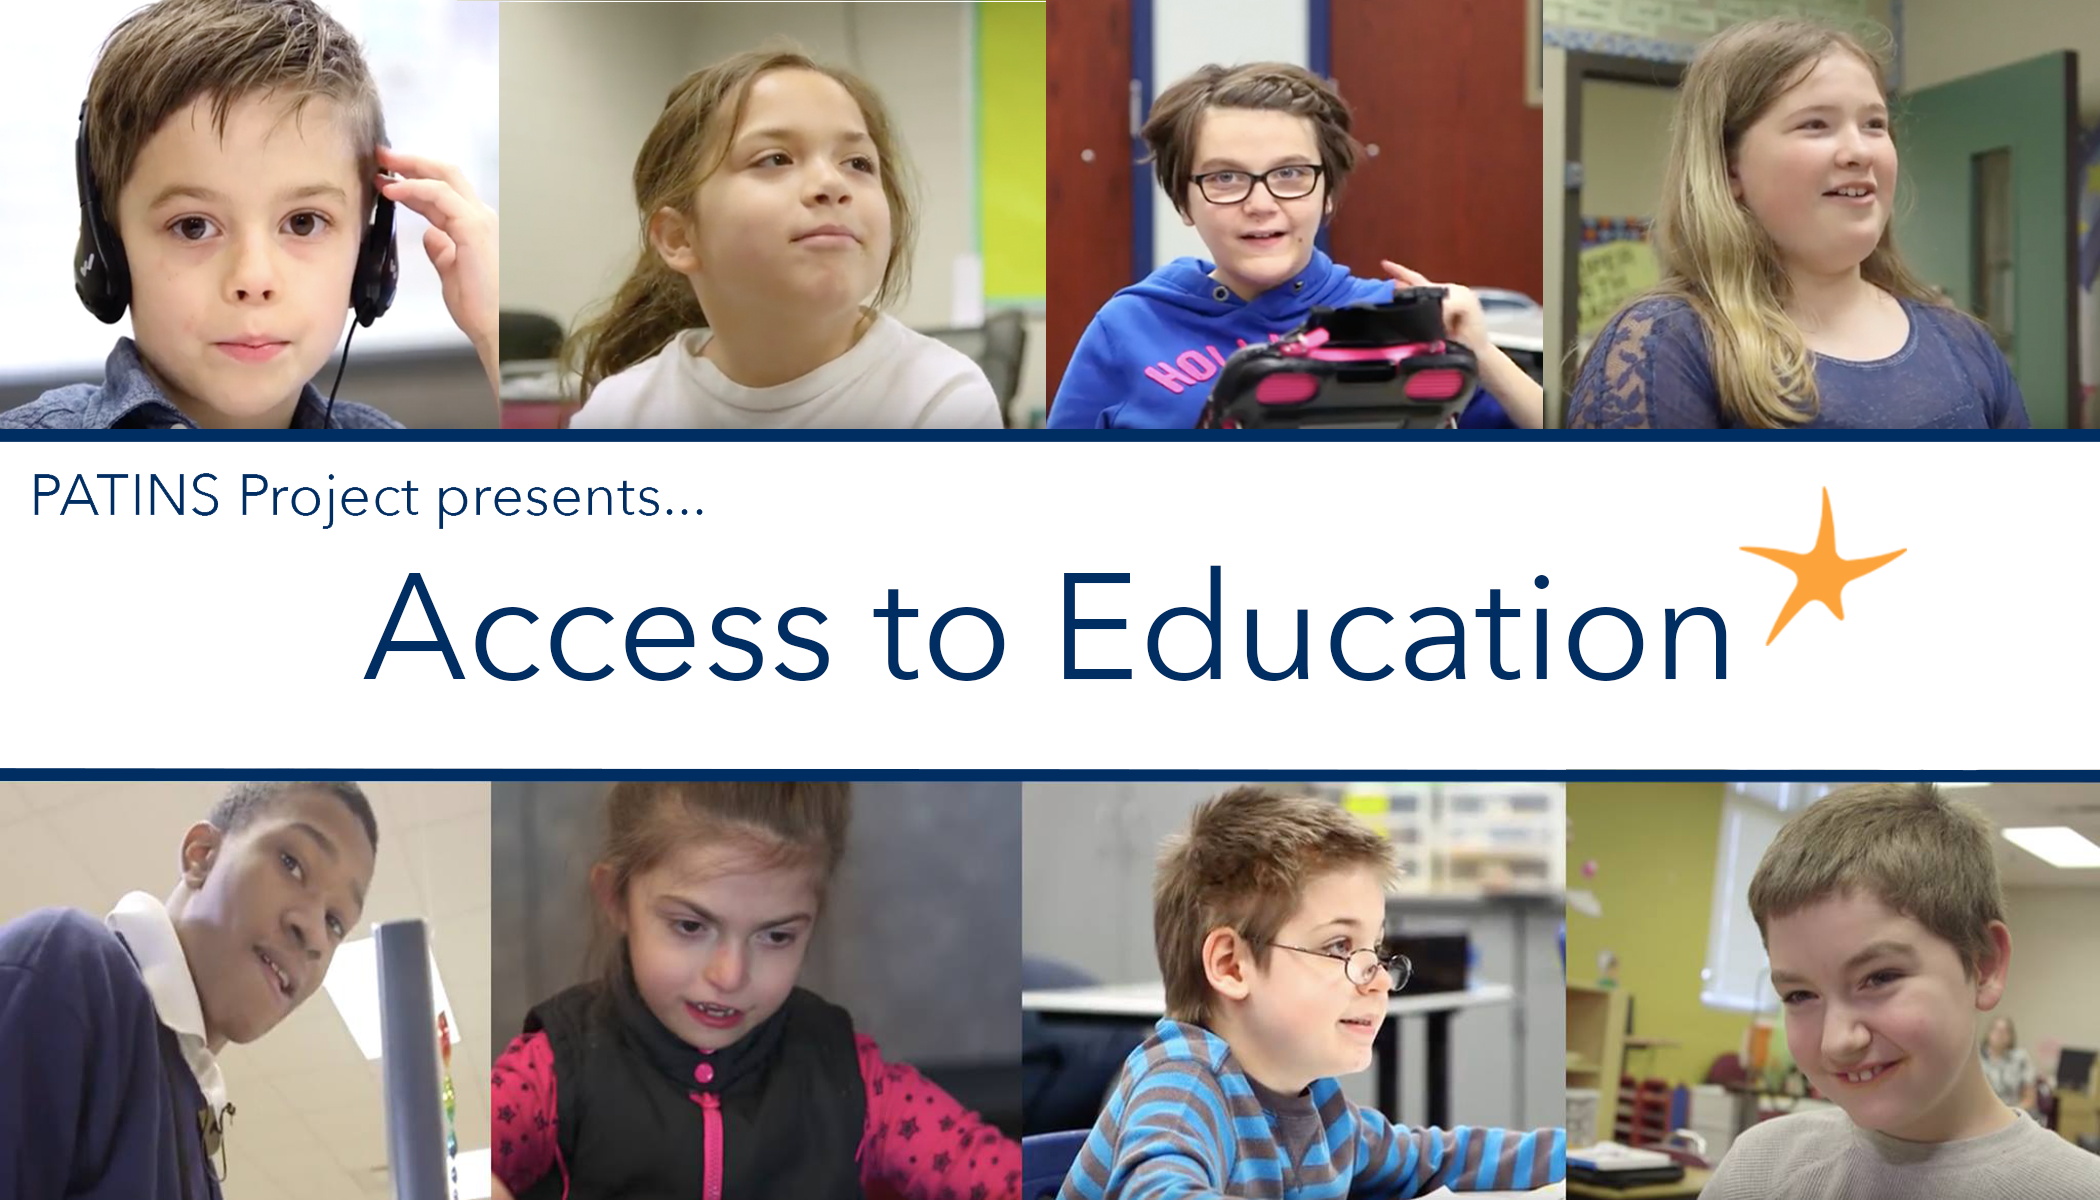 PATINS Presents Access to Education logo